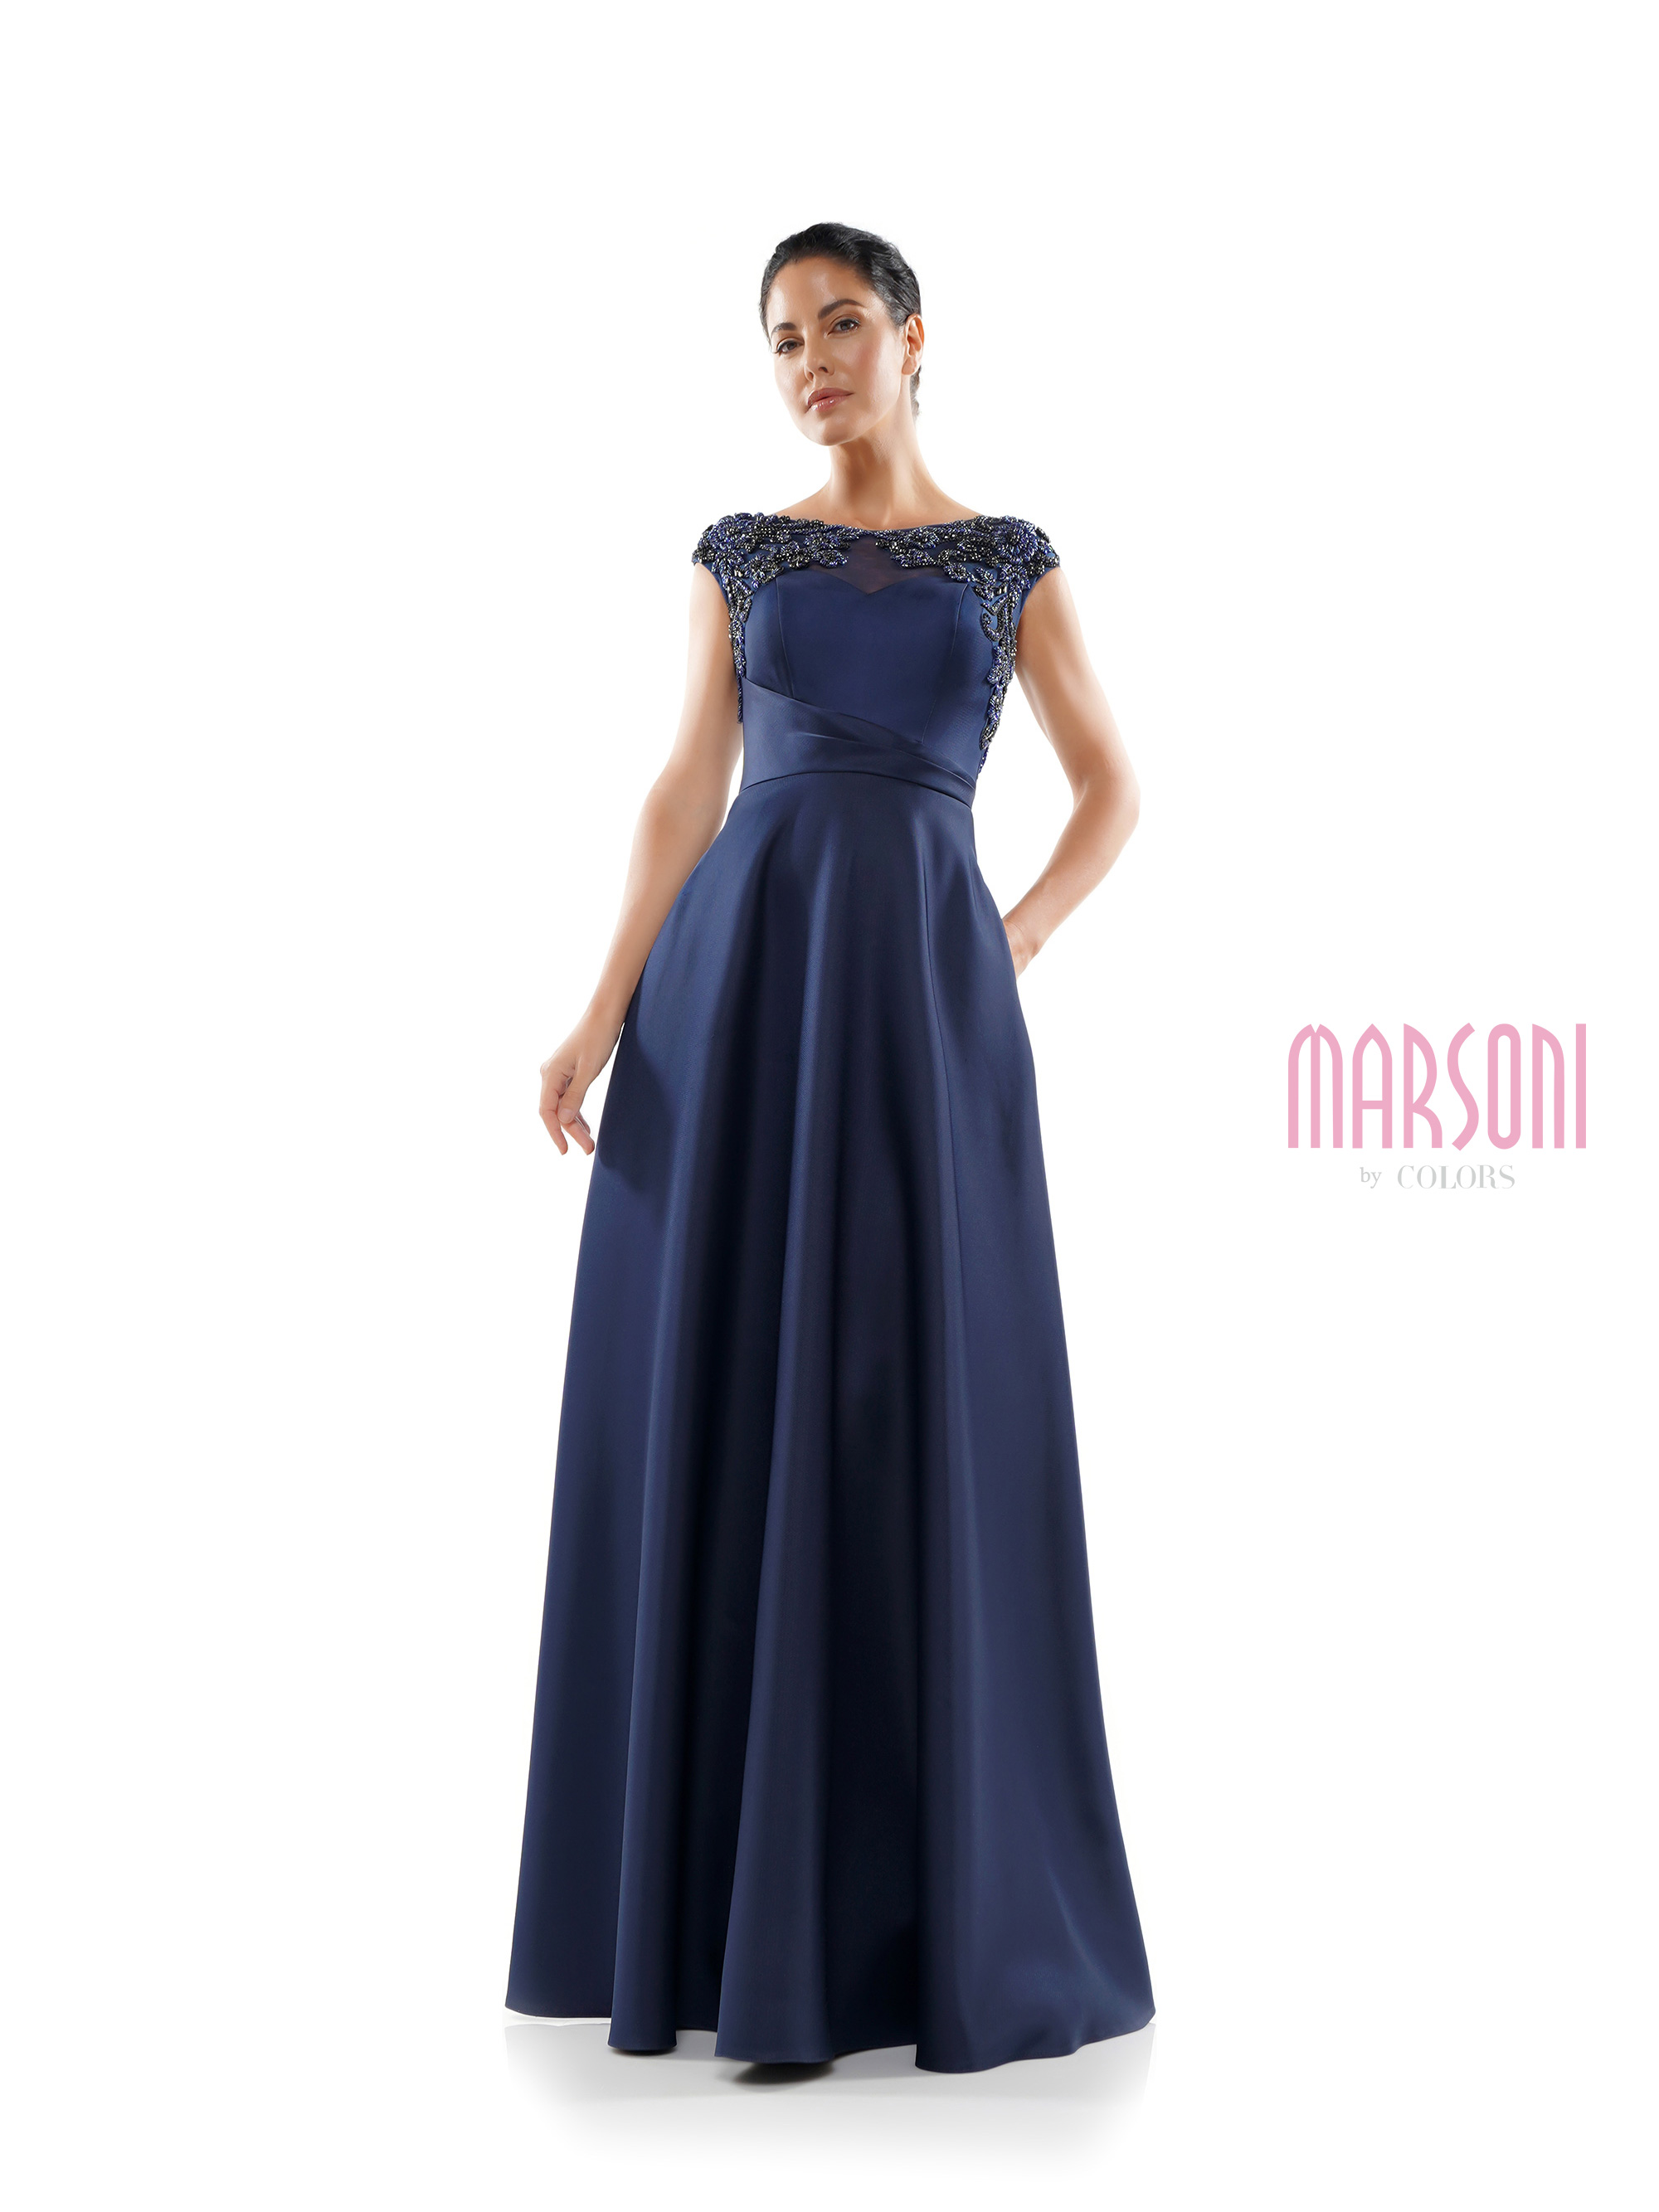 46 inch bateau neck double ply satin A line dress with sheer beaded shoulder, cap sleeve, pockets